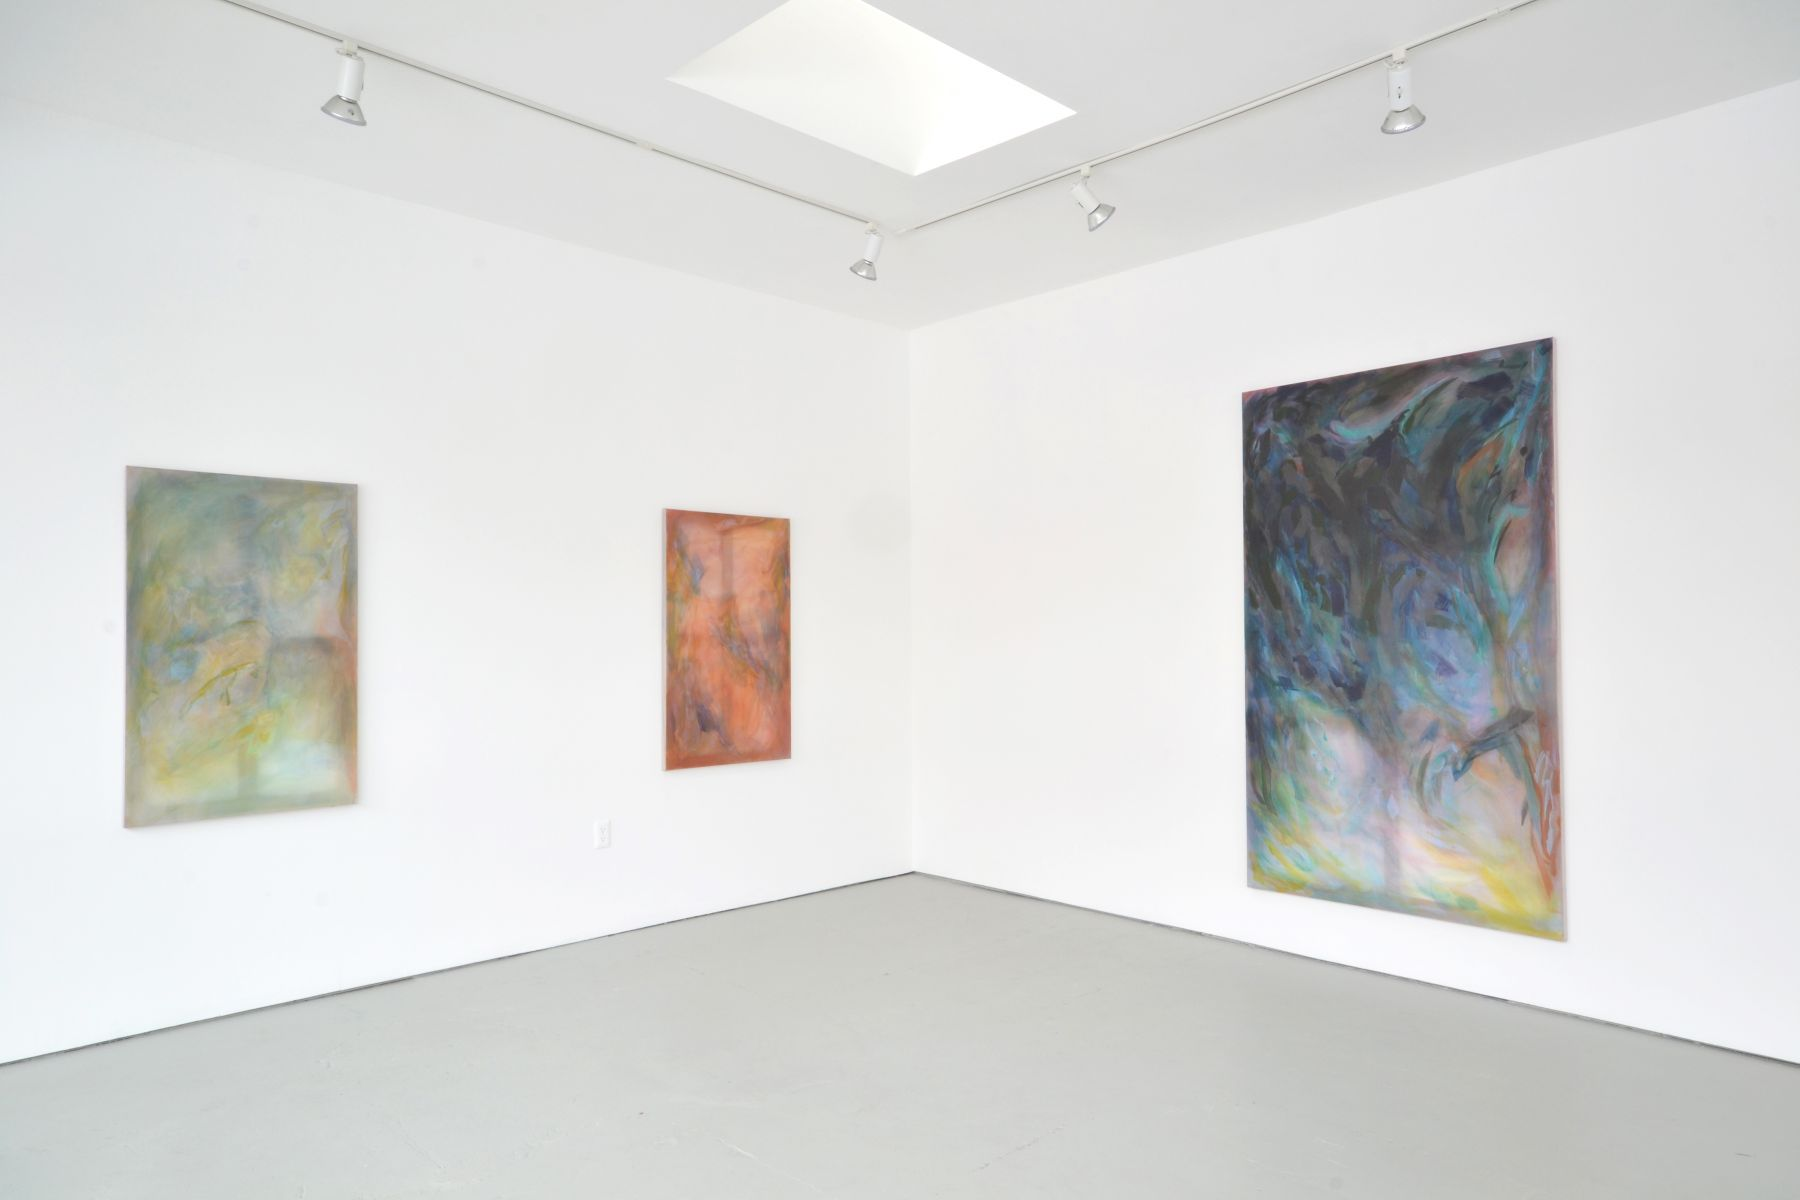 Installation view Exteriorized Bliss